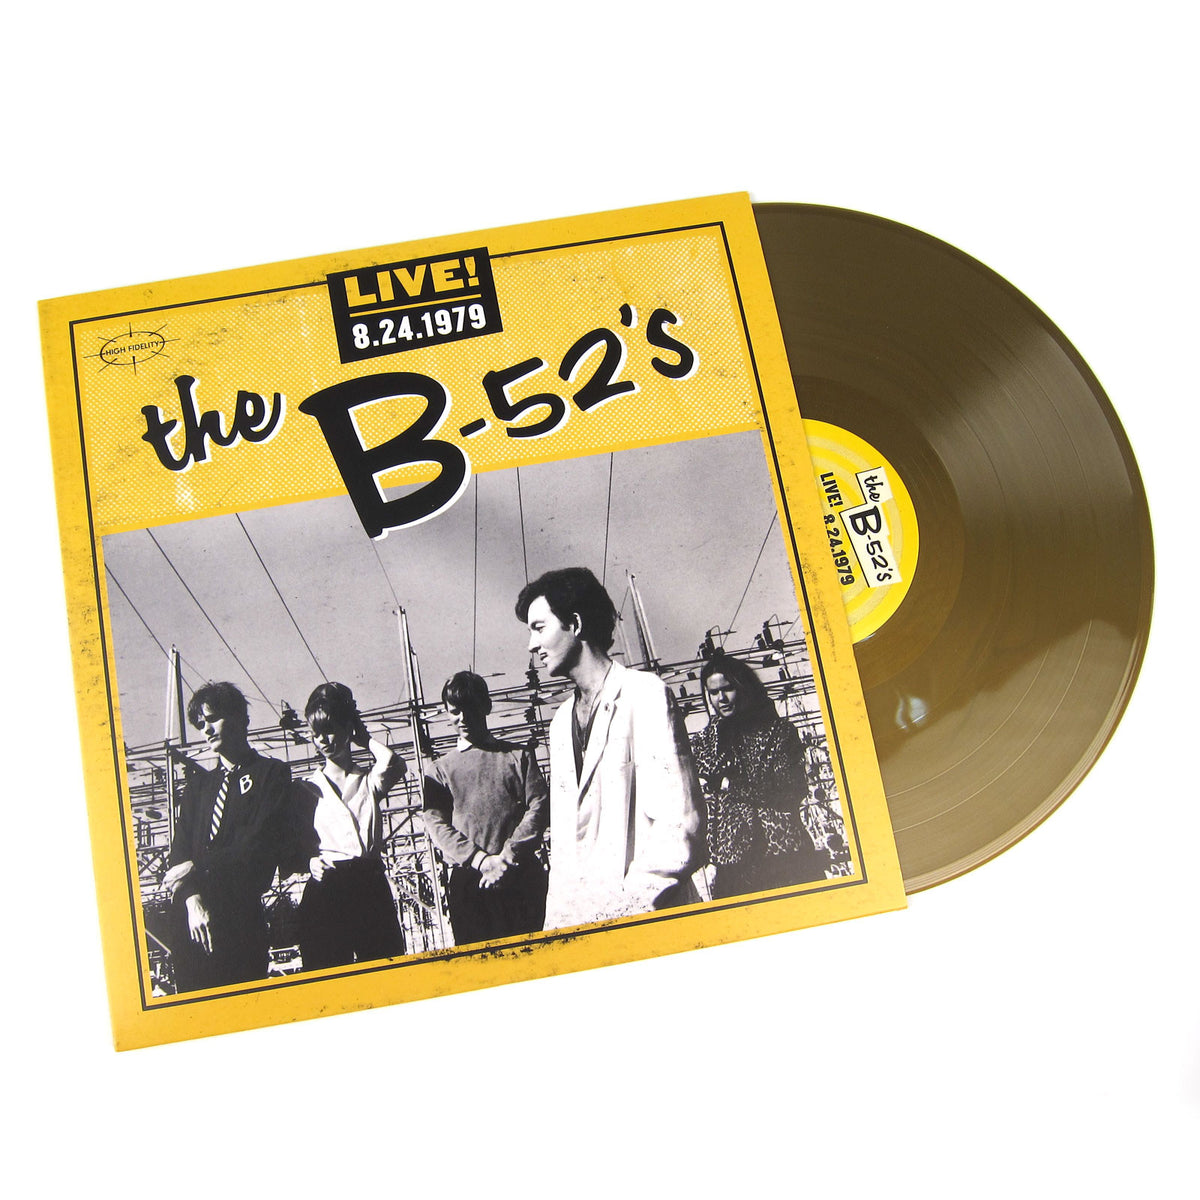 The B-52's: Live! 8-24-1979 (Colored Vinyl) Vinyl LP (Record Store Day)